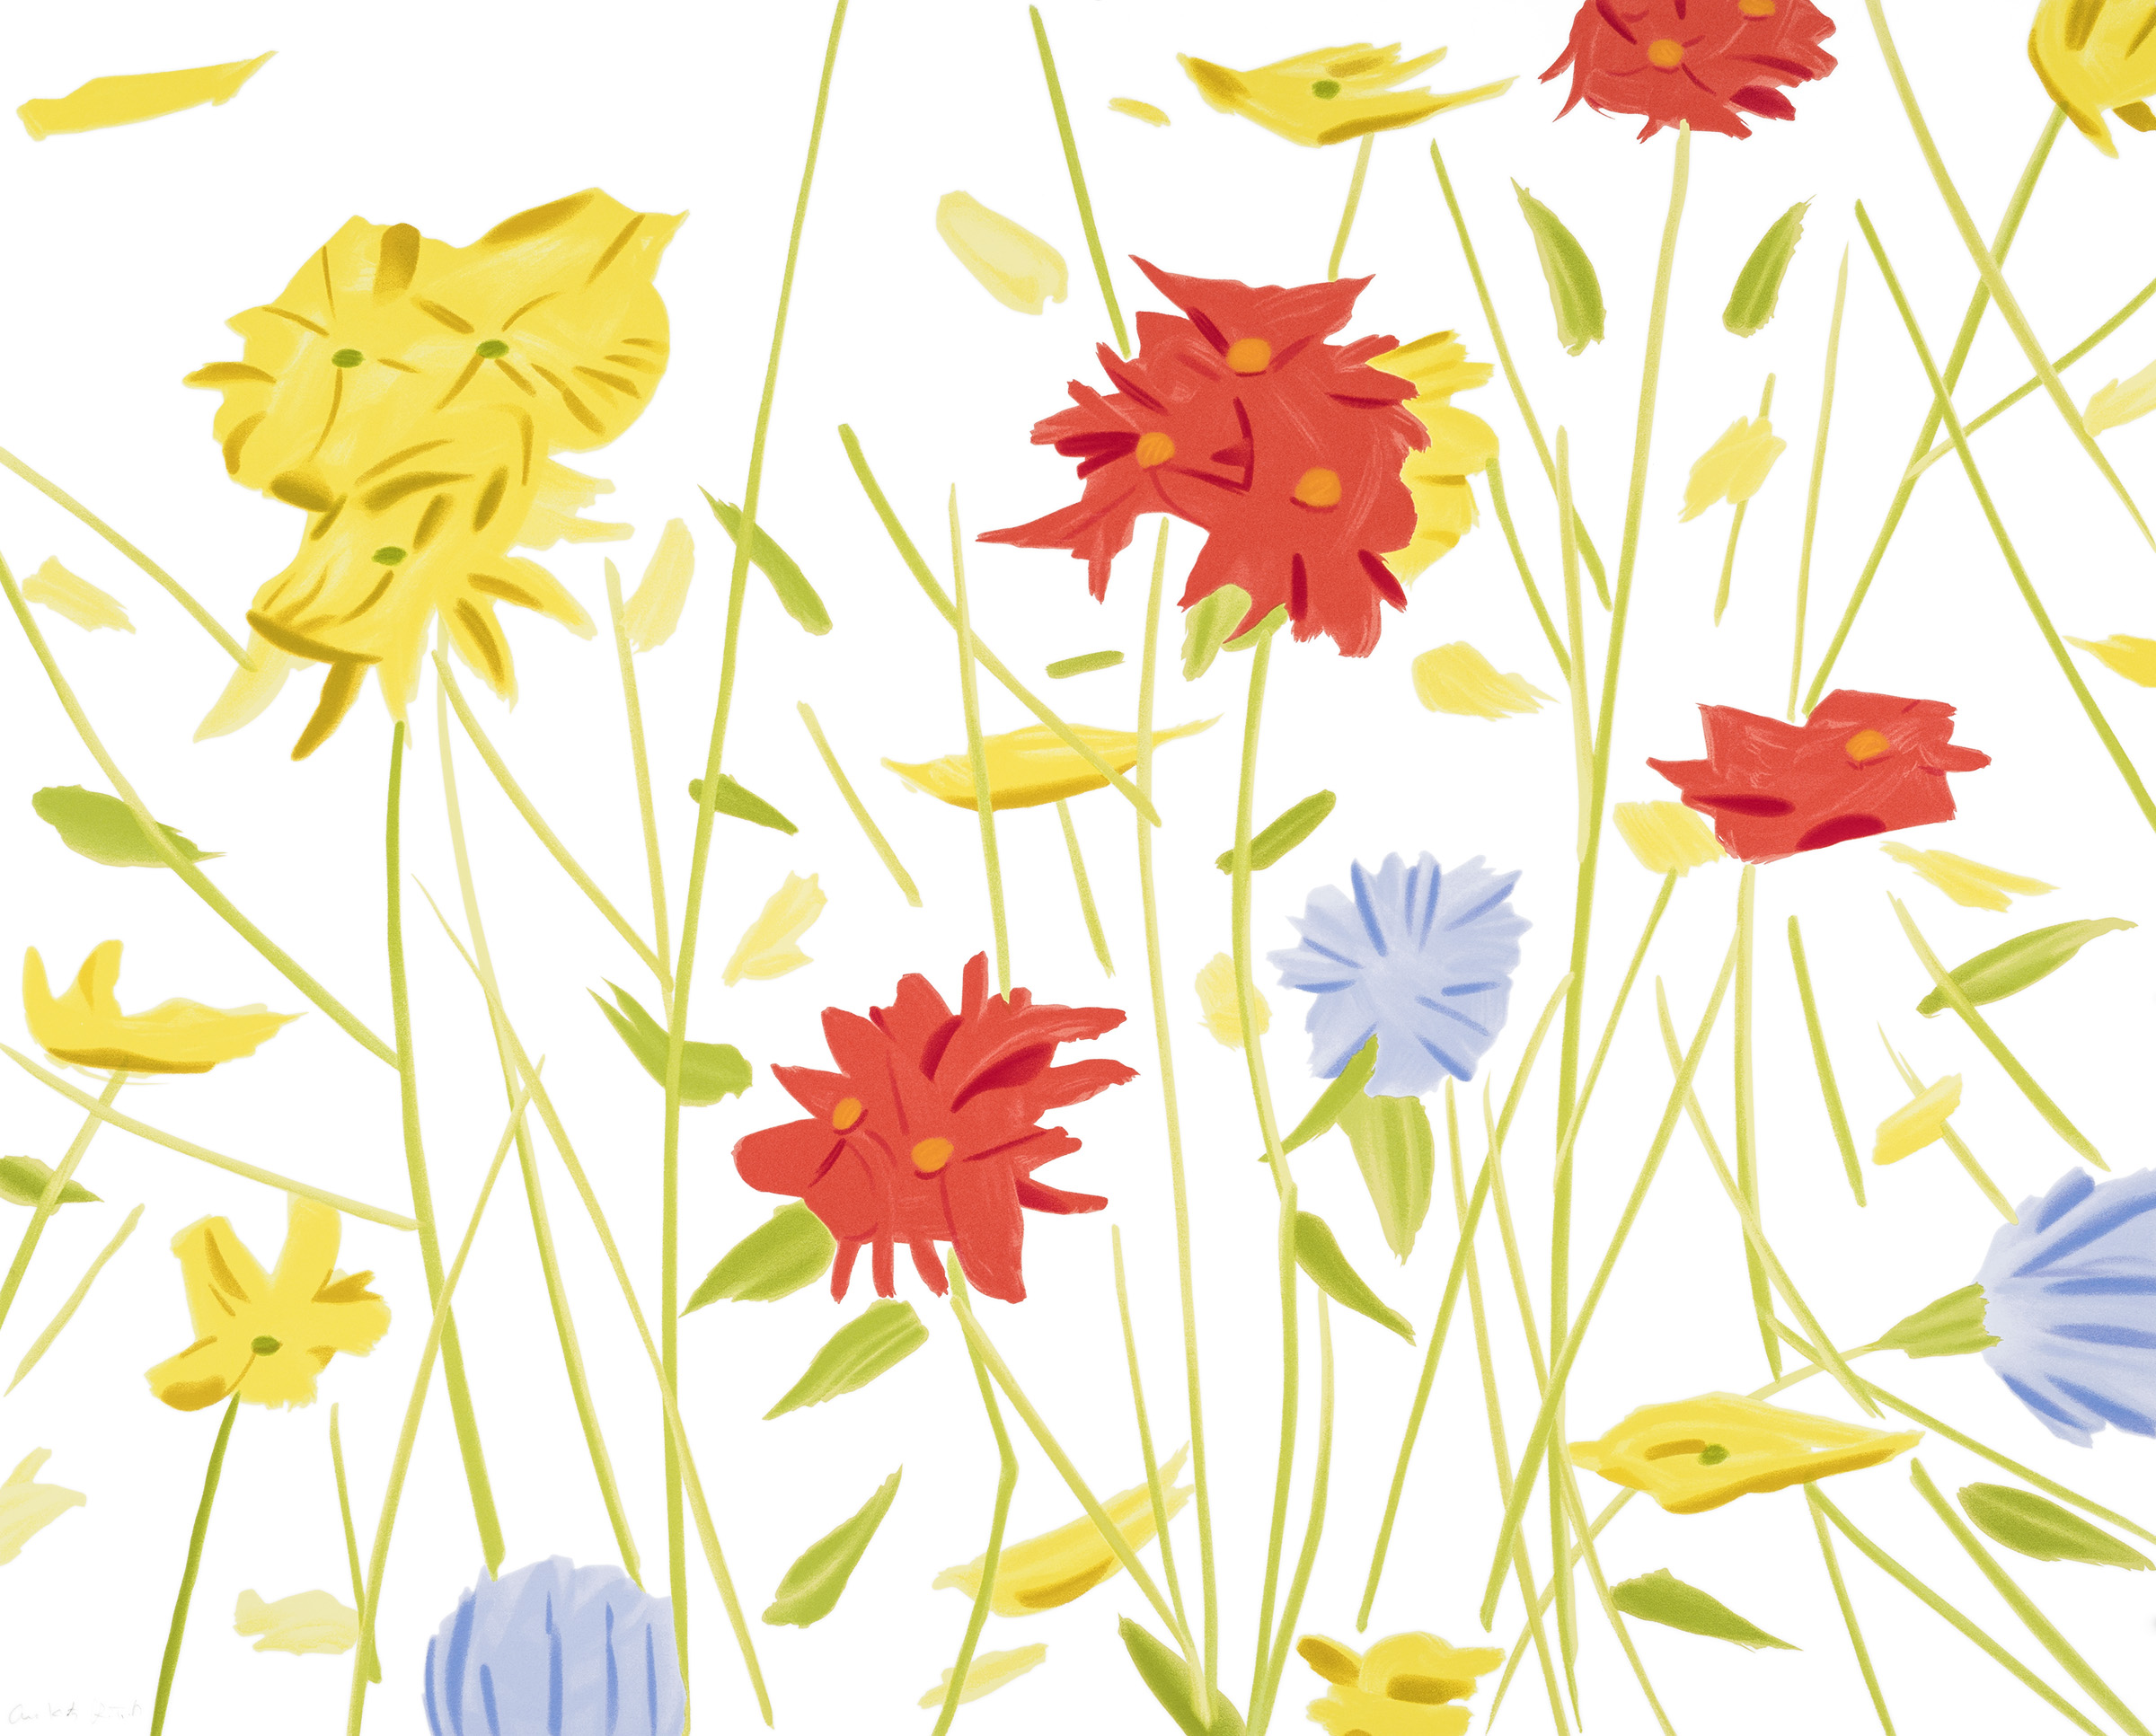 """Alex Katz  Wildflowers , 2017                       Normal    0                false    false    false       EN-US    X-NONE    X-NONE                                                                                                                                                                                                                                                                                                                                                                                                                                                                                                                                                                                                                                                                                                                                                                                                                                                                                                                                                                                                                                                                                                                                                                                                                                                                  /* Style Definitions */  table.MsoNormalTable {mso-style-name:""""Table Normal""""; mso-tstyle-rowband-size:0; mso-tstyle-colband-size:0; mso-style-noshow:yes; mso-style-priority:99; mso-style-parent:""""""""; mso-padding-alt:0in 5.4pt 0in 5.4pt; mso-para-margin:0in; mso-para-margin-bottom:.0001pt; mso-pagination:widow-orphan; font-size:12.0pt; font-family:""""Calibri"""",sans-serif; mso-ascii-font-family:Calibri; mso-ascii-theme-font:minor-latin; mso-hansi-font-family:Calibri; mso-hansi-theme-font:minor-latin; mso-bidi-font-family:""""Times New Roman""""; mso-bidi-theme-font:minor-bidi;}     21-color silkscreen on Saunders Waterford 425 gsm paper 40 x 50 in."""